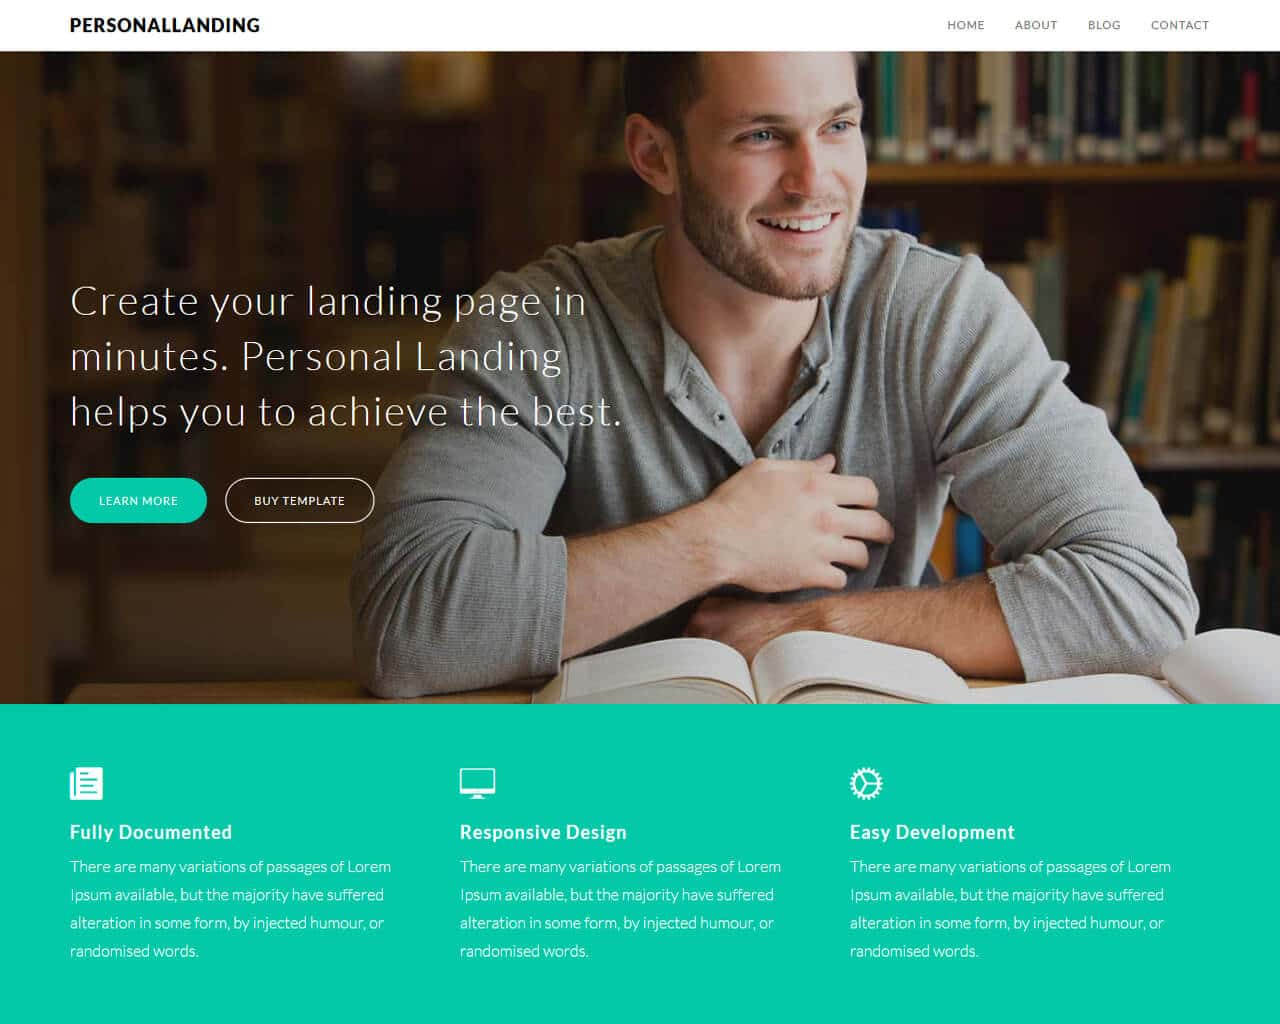 PersonalLanding Website Template